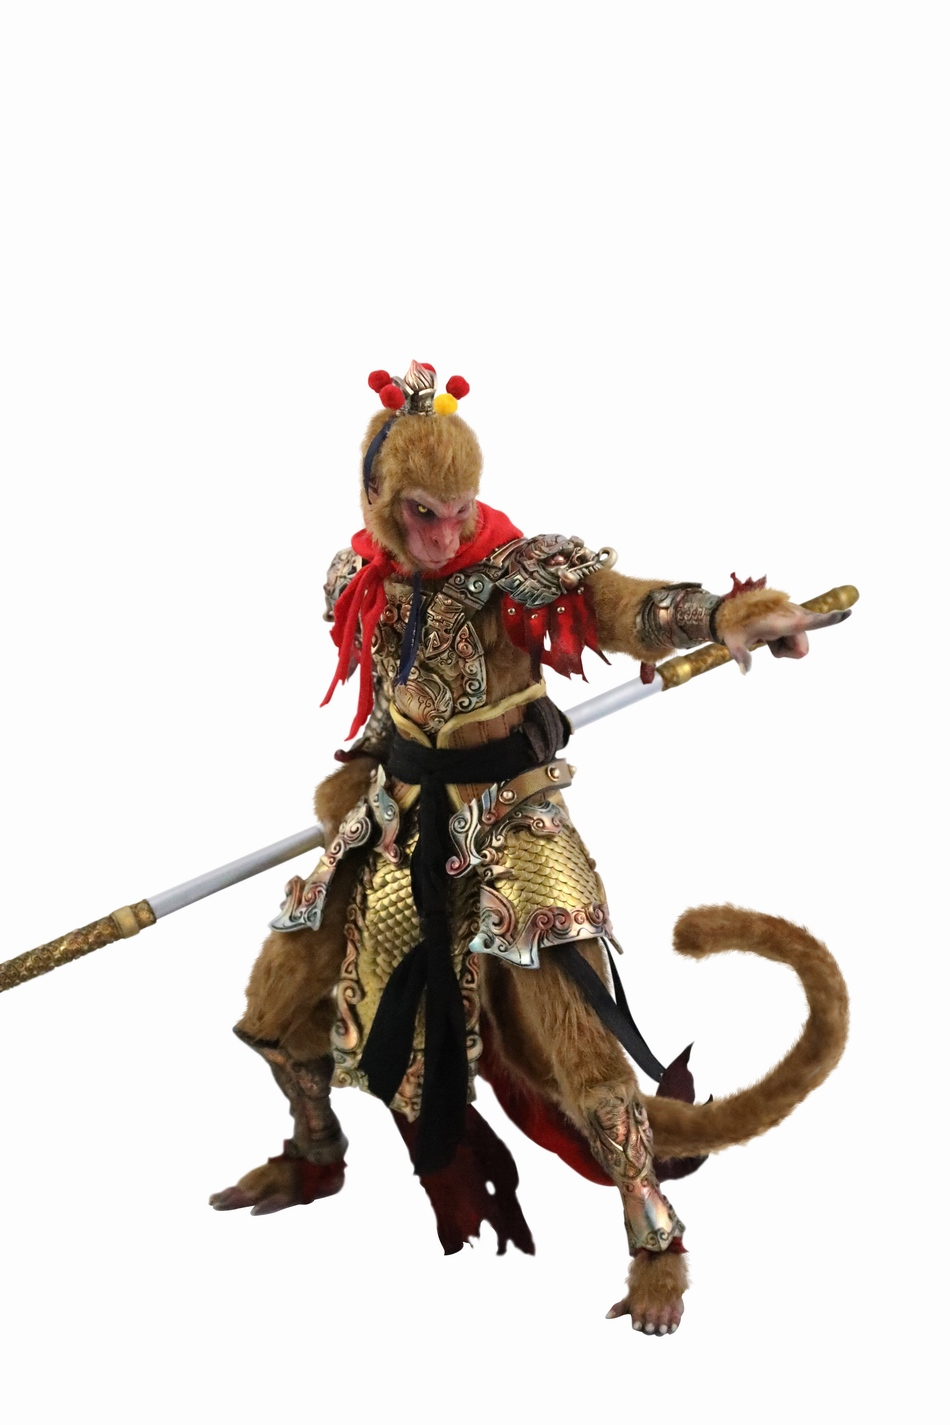 EveningPhase - NEW PRODUCT: 303TOYS x Evening phase: 1/6 National Wind Legend Series - Sun Wukong Monkey King Apocalypse & Dasheng Qitian & Stepping 18065810